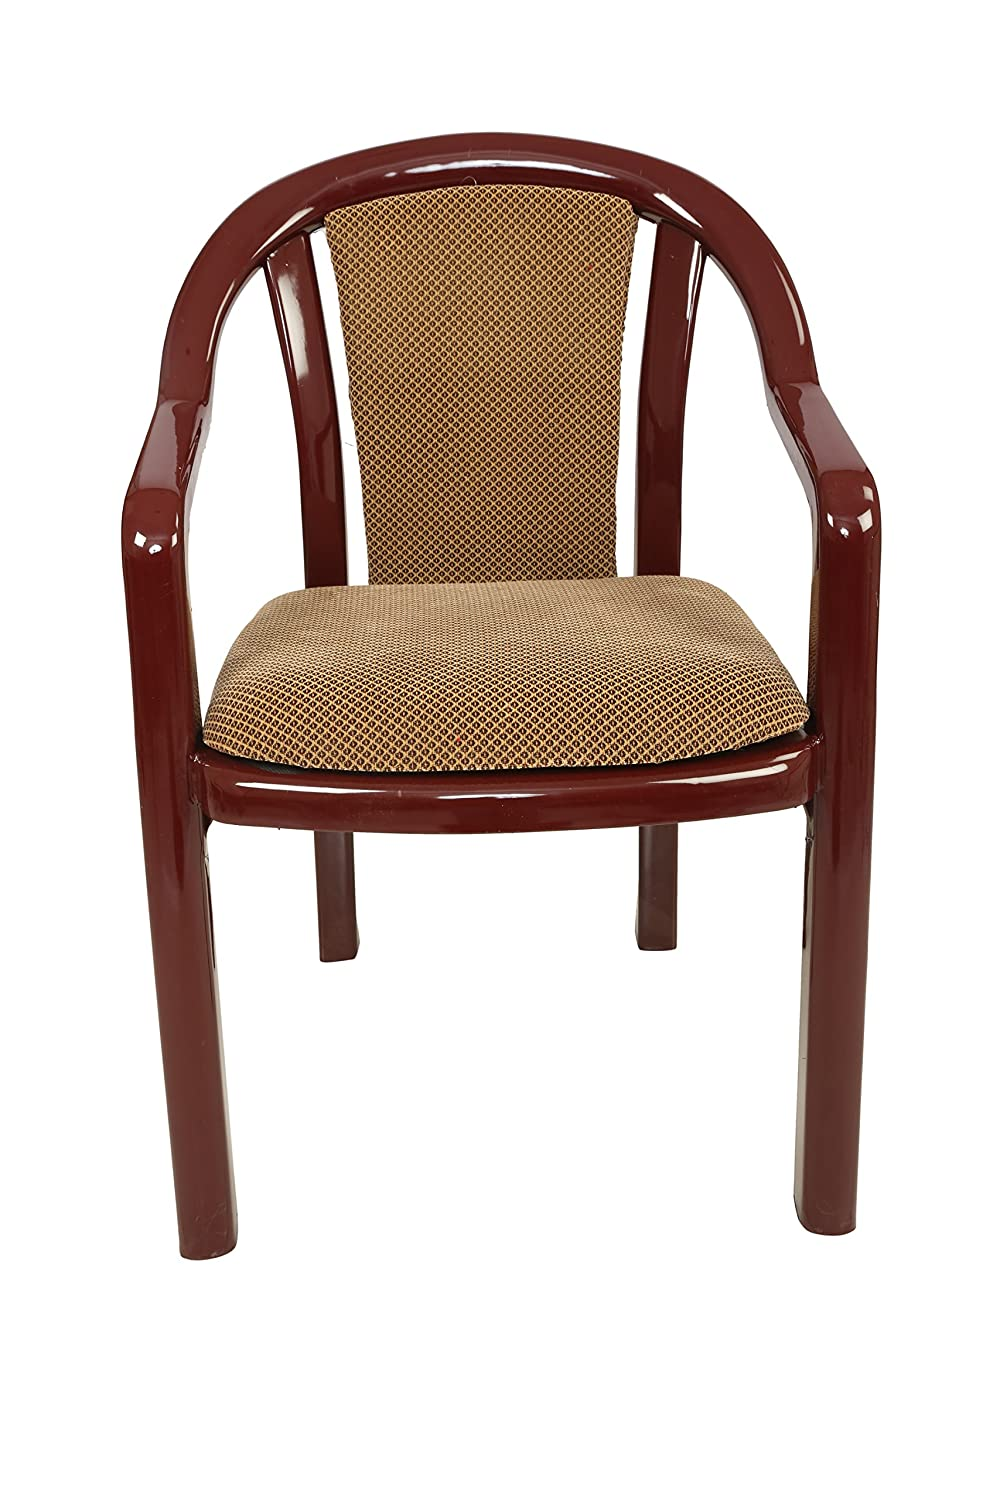 rattan bamboo casted moulded chairs buy rattan bamboo casted